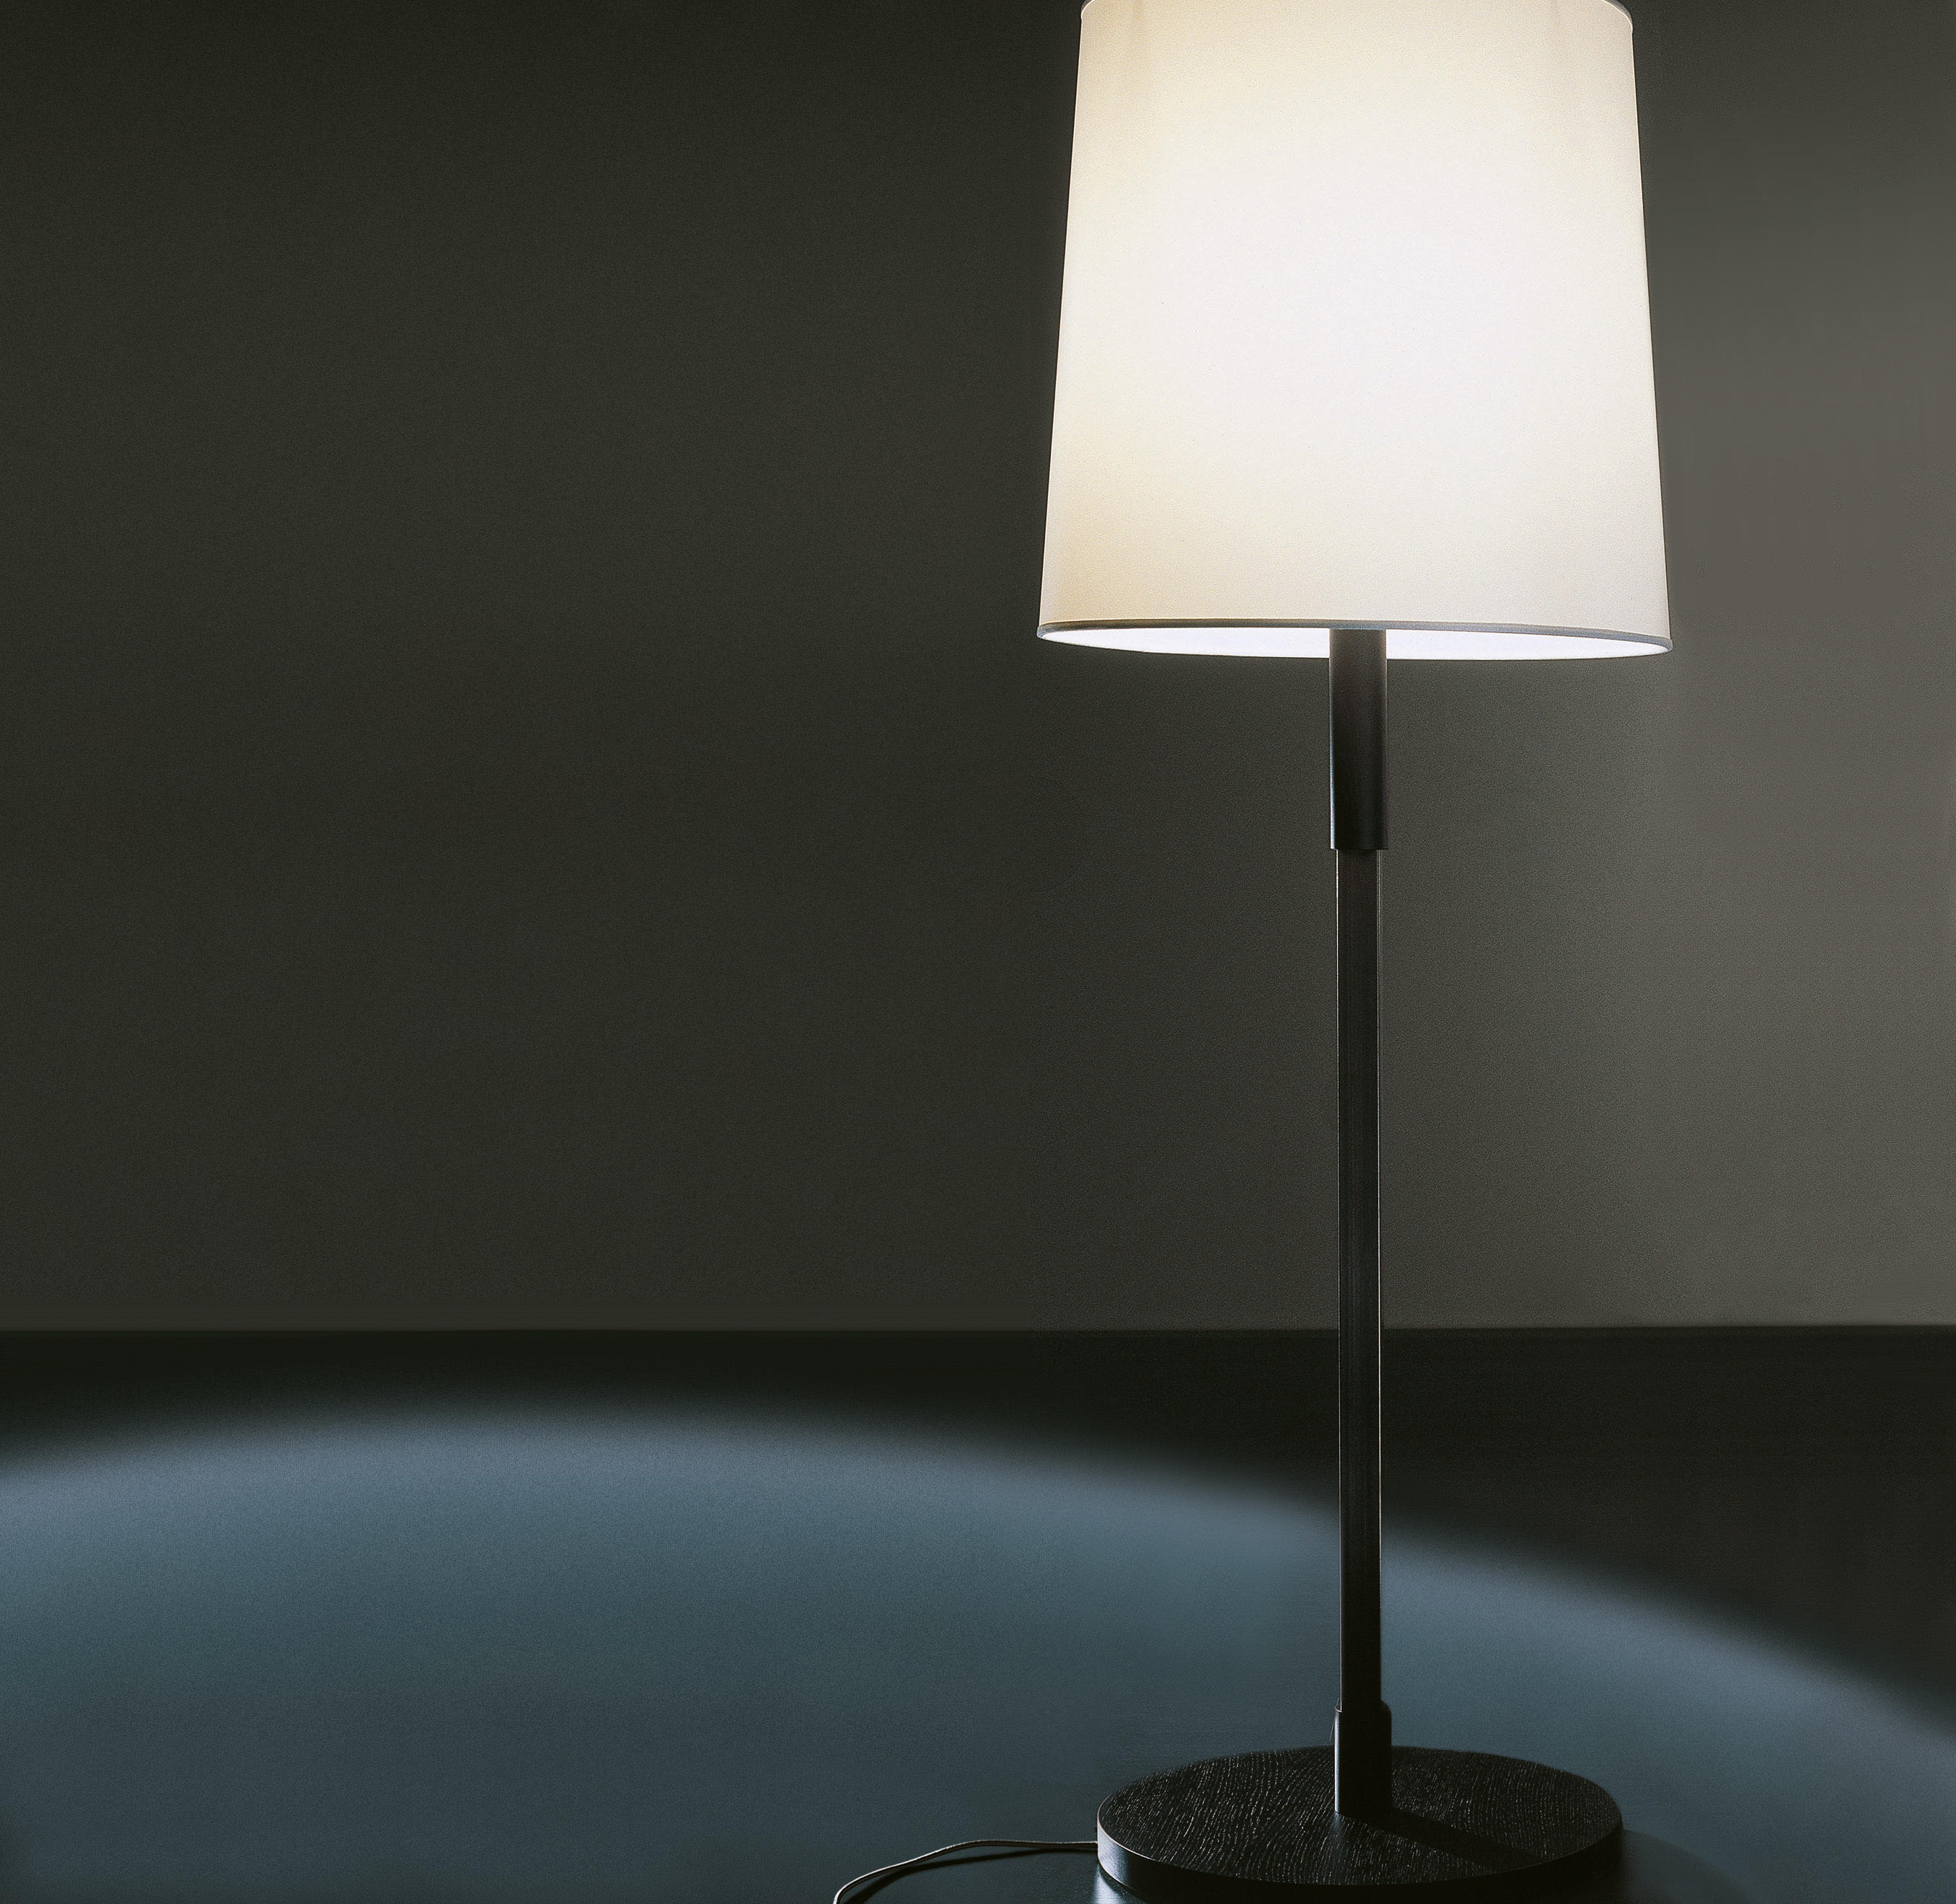 Kid due floor lamp general lighting from meridiani architonic kid due floor lamp by meridiani mozeypictures Image collections